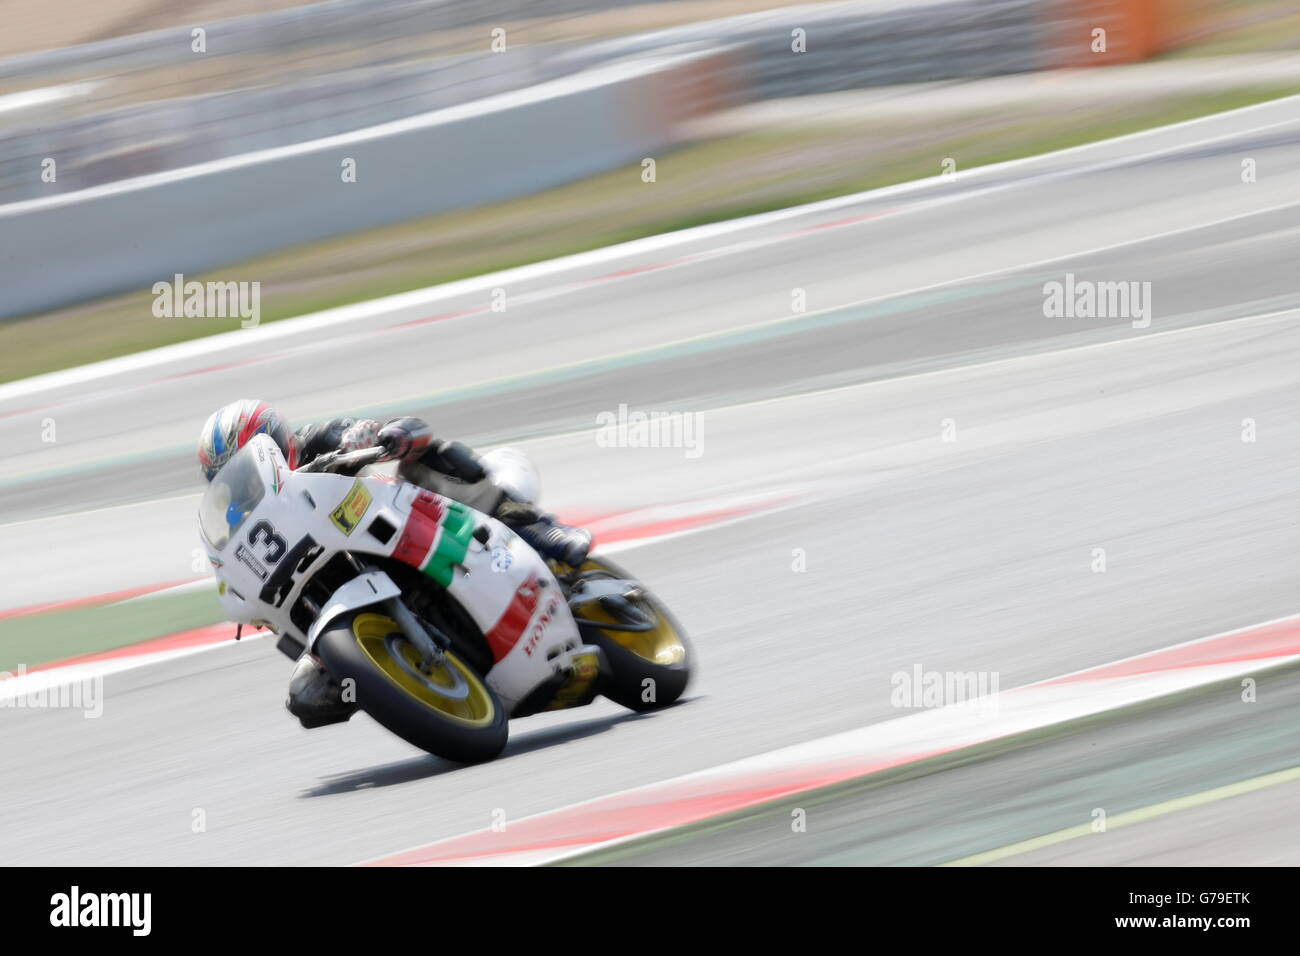 Barcelona, Spain. 26th June, 2016. ROBLES PEREZ, MANEL member of the Racc Motor Sport team, in action during the - Stock Image